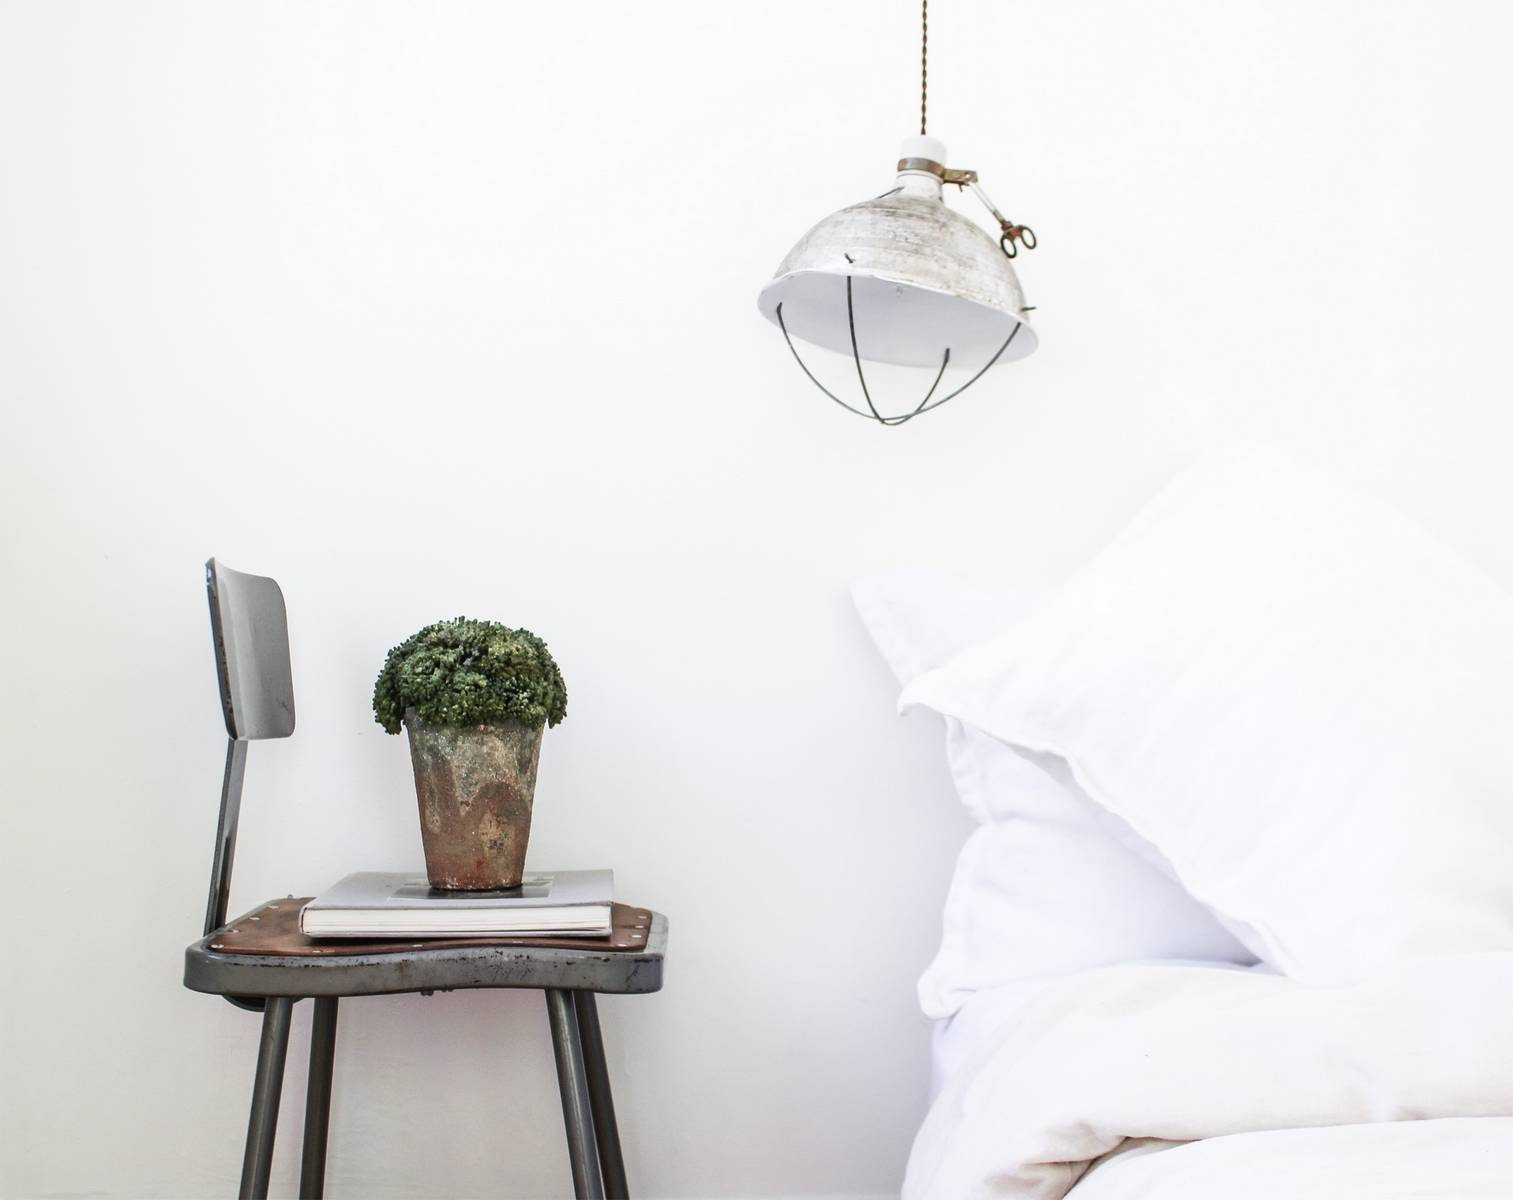 Chair with book and plant next to bed with light fixture above